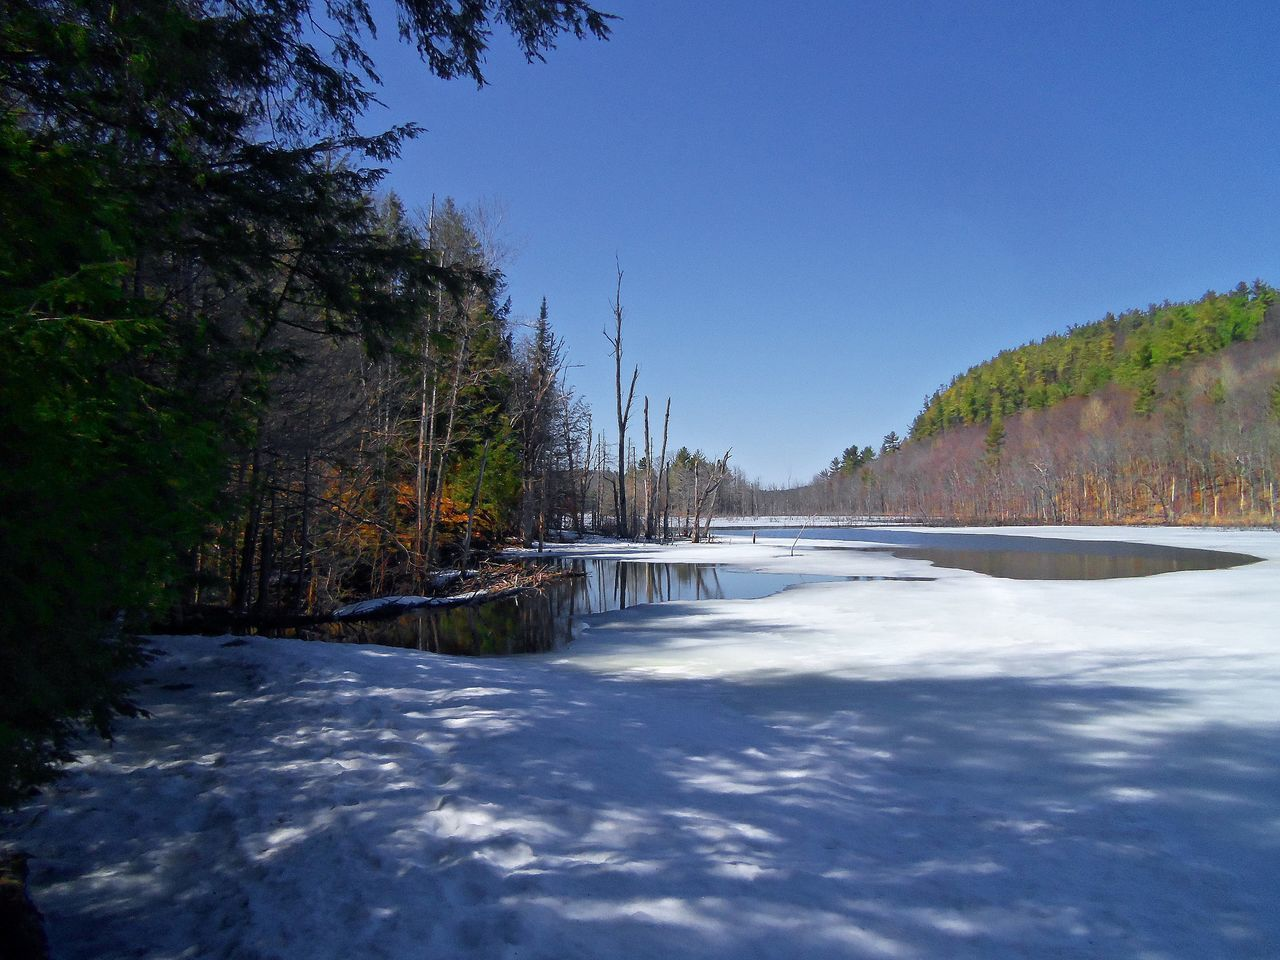 Spring thaw on the lake in the northern wilderness Beauty In Nature Blue Clear Sky Day Forest Ice On Lake Ice Out Lake Nature No People North Land Northern Lake Outdoors Scenic Scenics Sky Spring Spring Day Spring Thaw Spring Time Tranquil Scene Tranquility Tree Water Winter Is Over